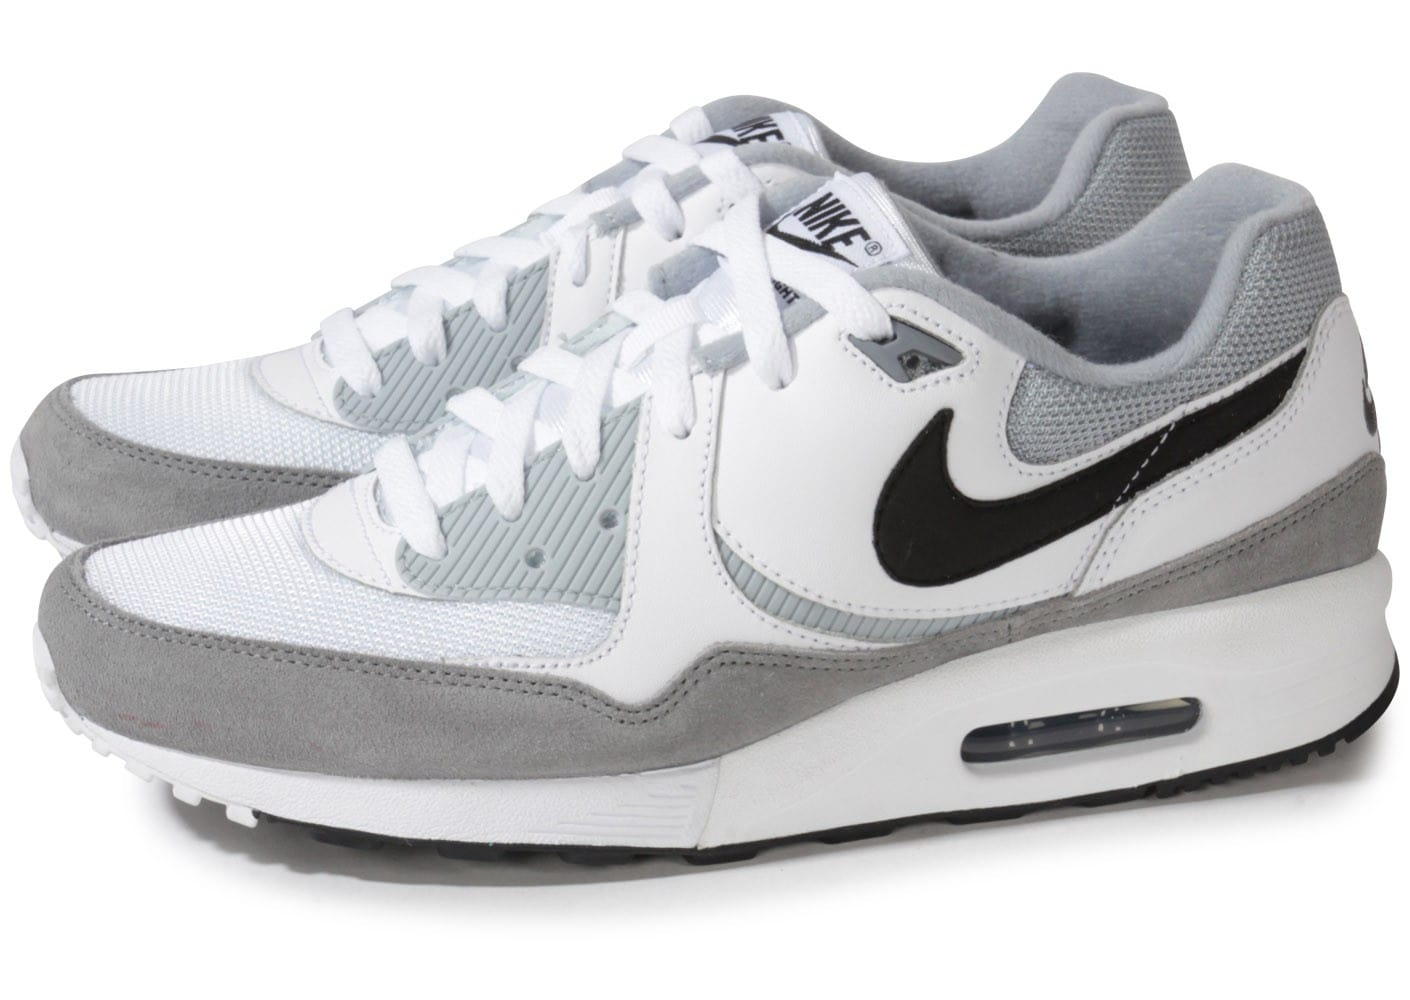 Nike Air Max Light Homme Essential Blanche Chaussures Baskets Homme Light f42cc2